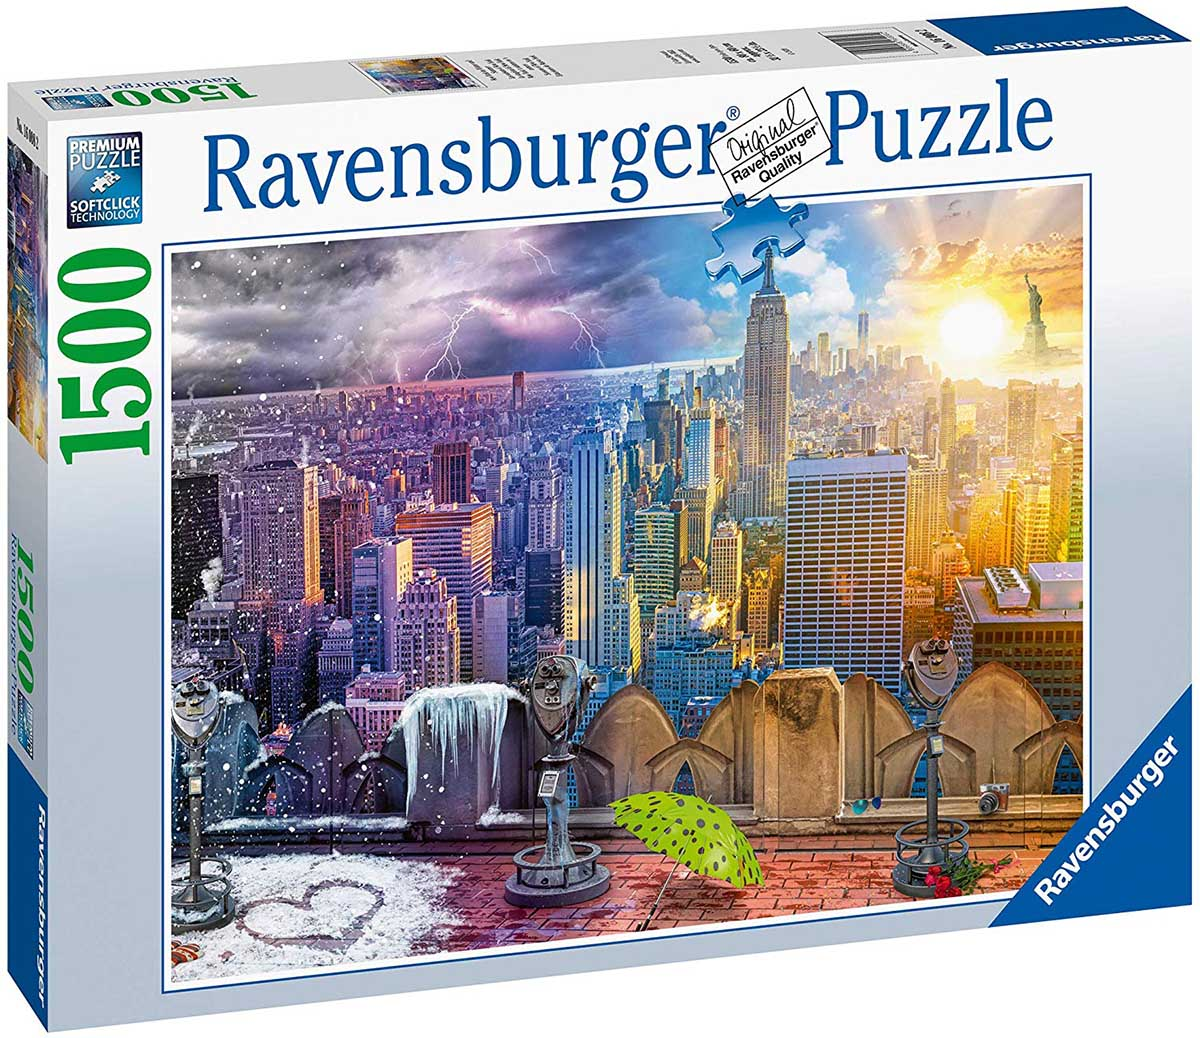 Day & Night NYC Skyline Skyline / Cityscape Jigsaw Puzzle